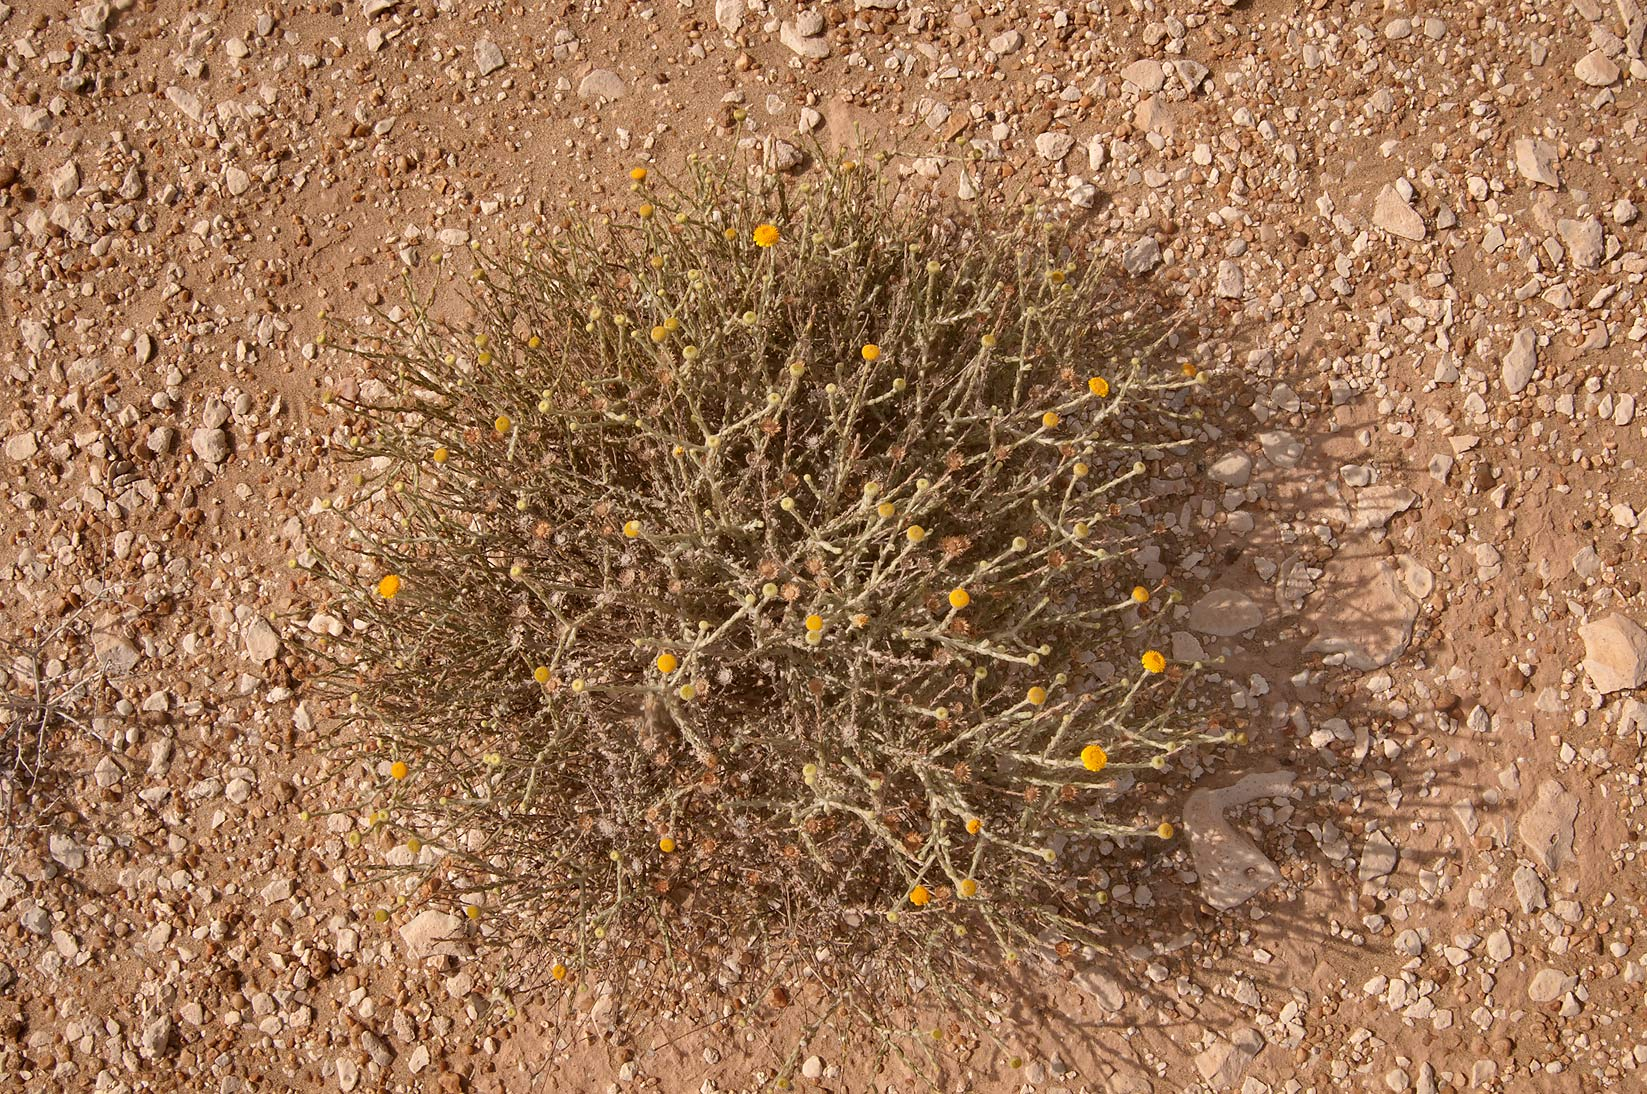 Desert plant with yellow flowers Pulicaria...Mesayeed, south-west from Doha. Qatar